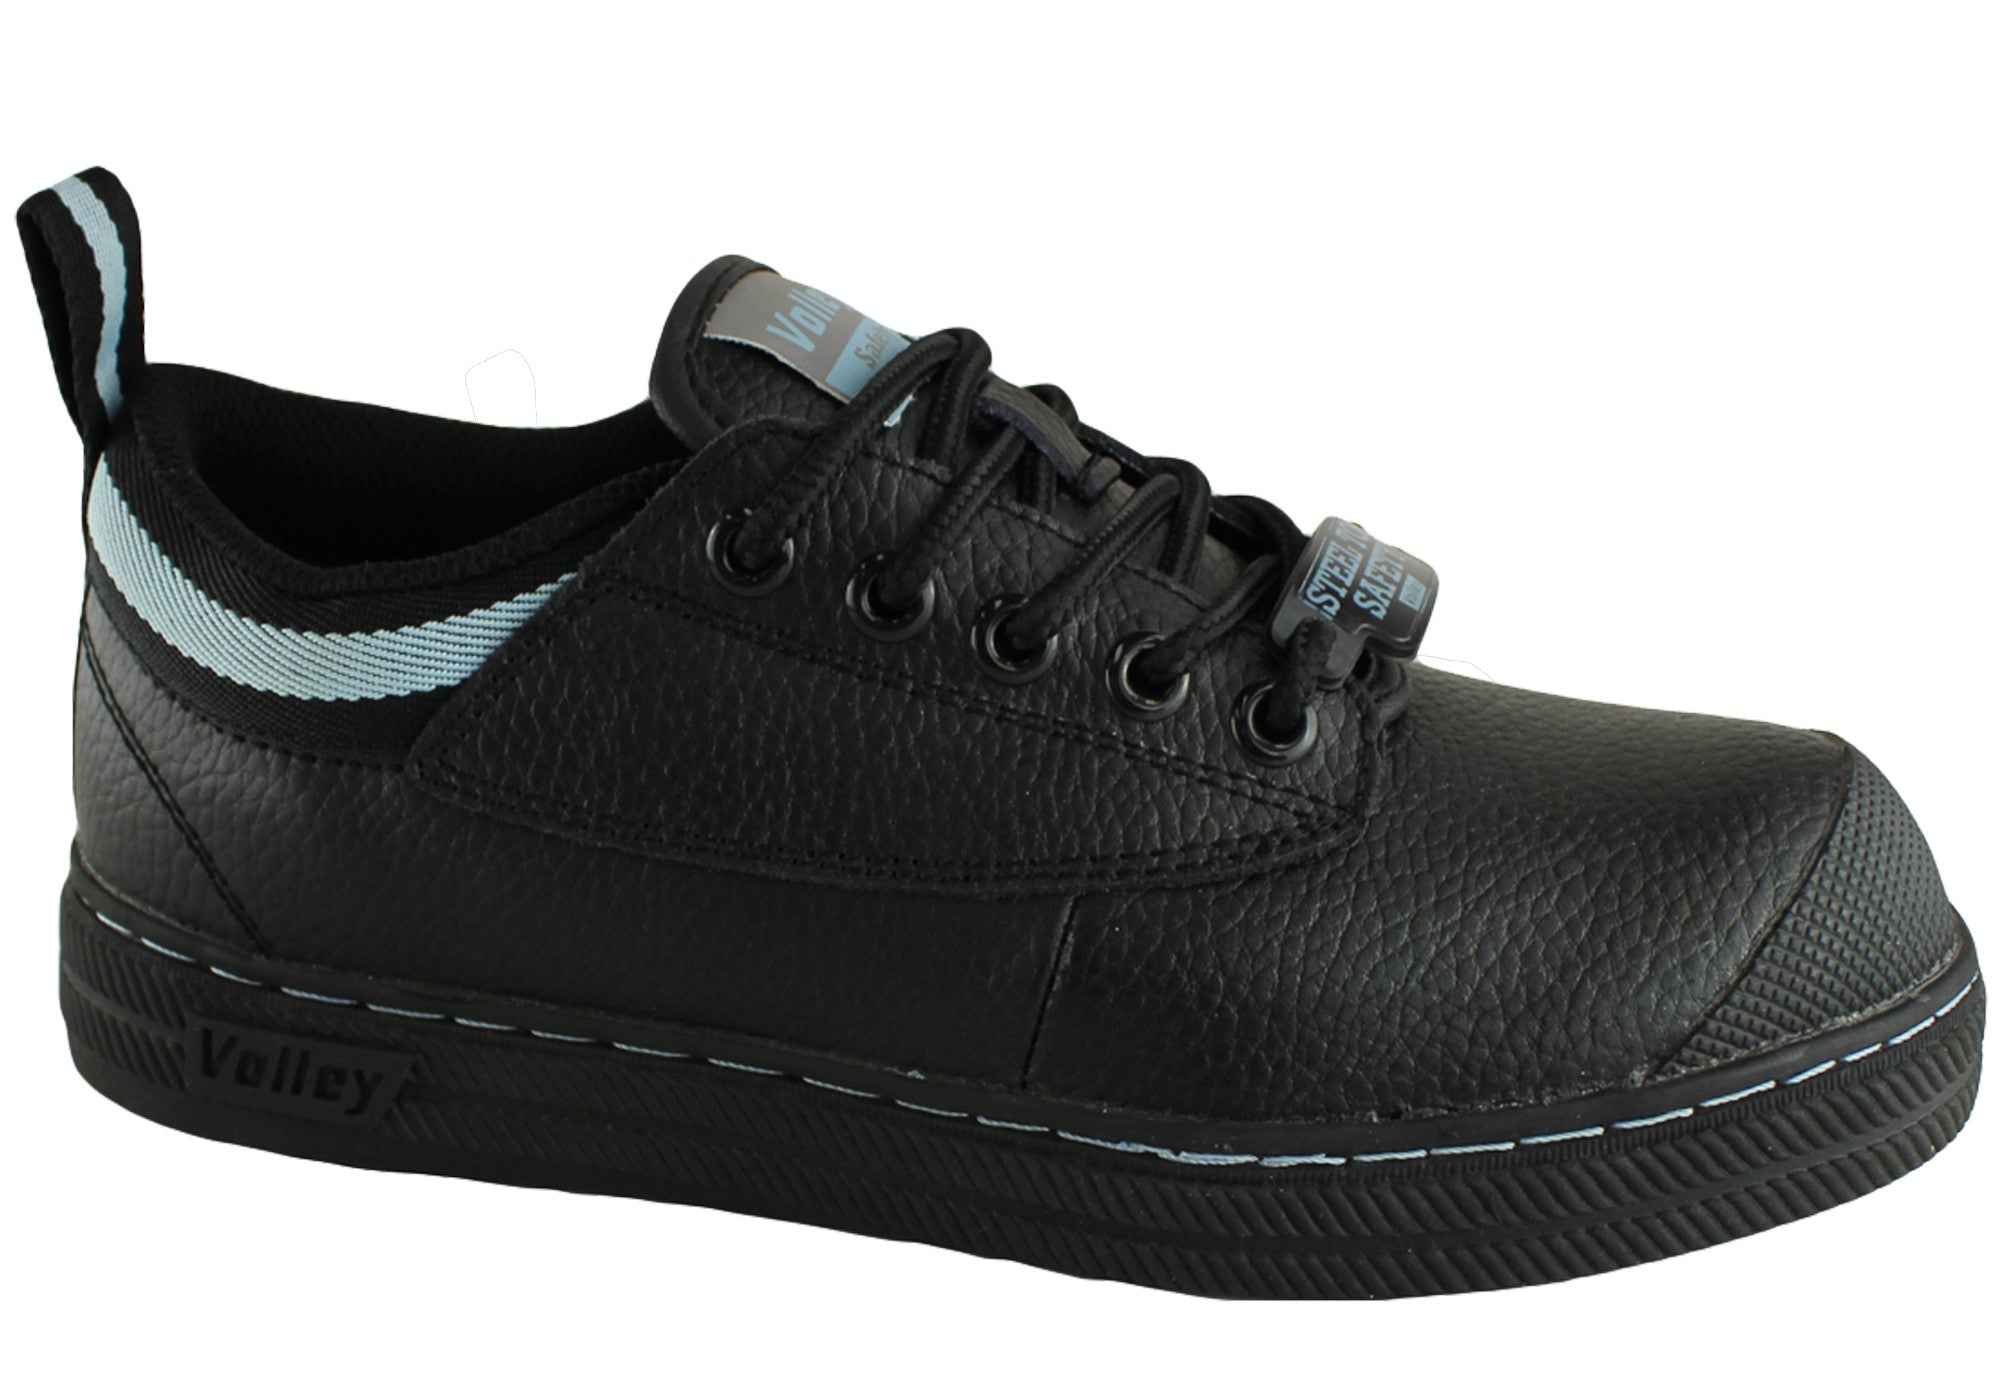 Dunlop Volley Safety Womens Steel Toe Leather Shoes | Brand House Direct